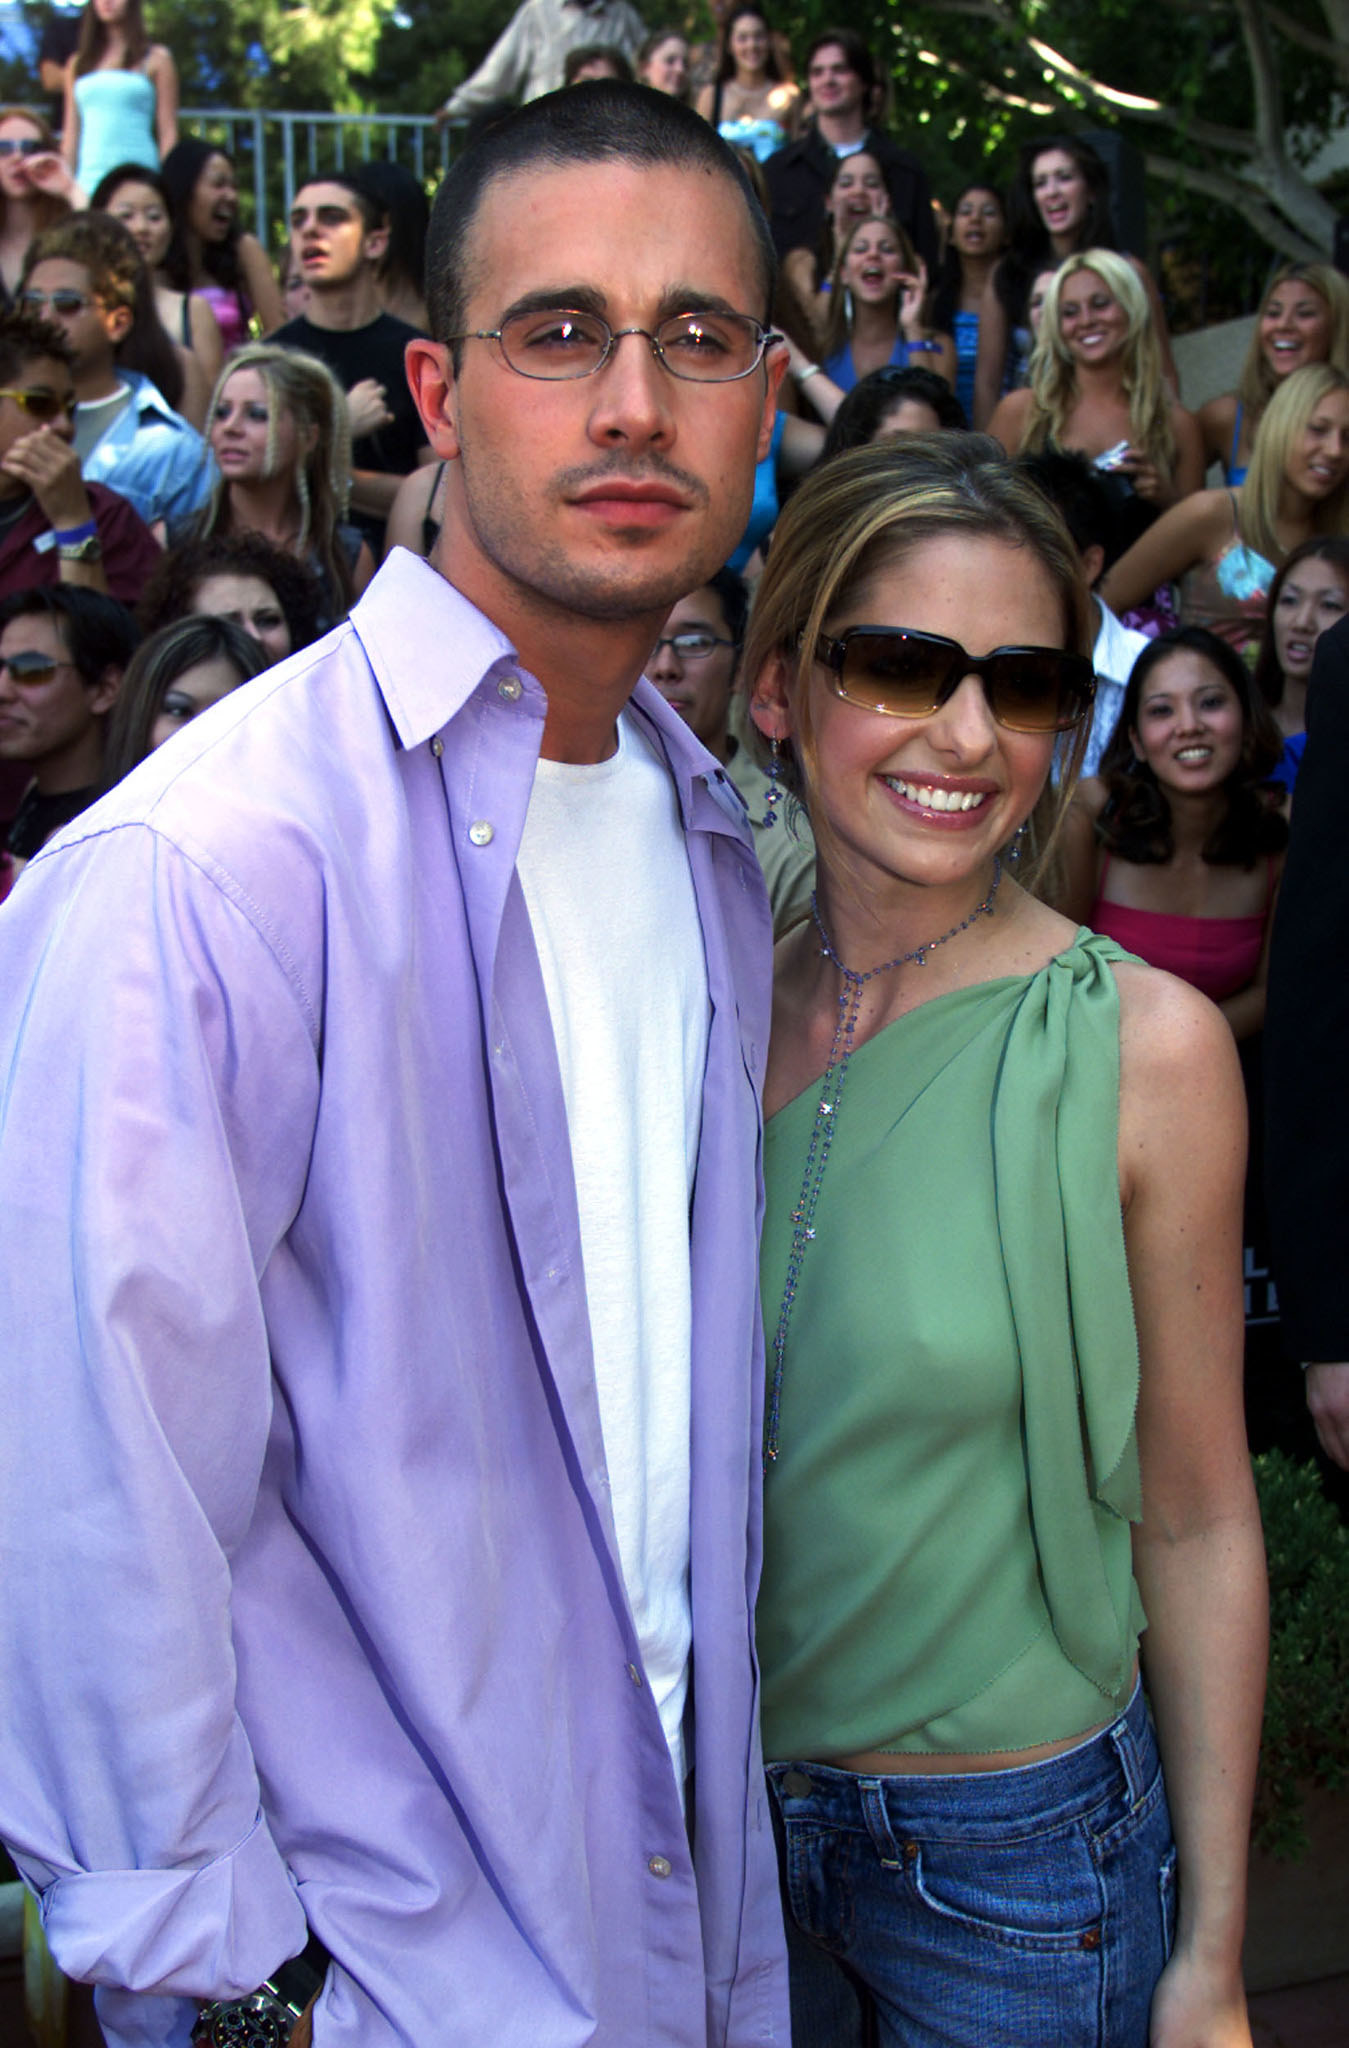 Freddie Prinze Jr. and Sarah Michelle Gellar on a red carpet in the early '00s